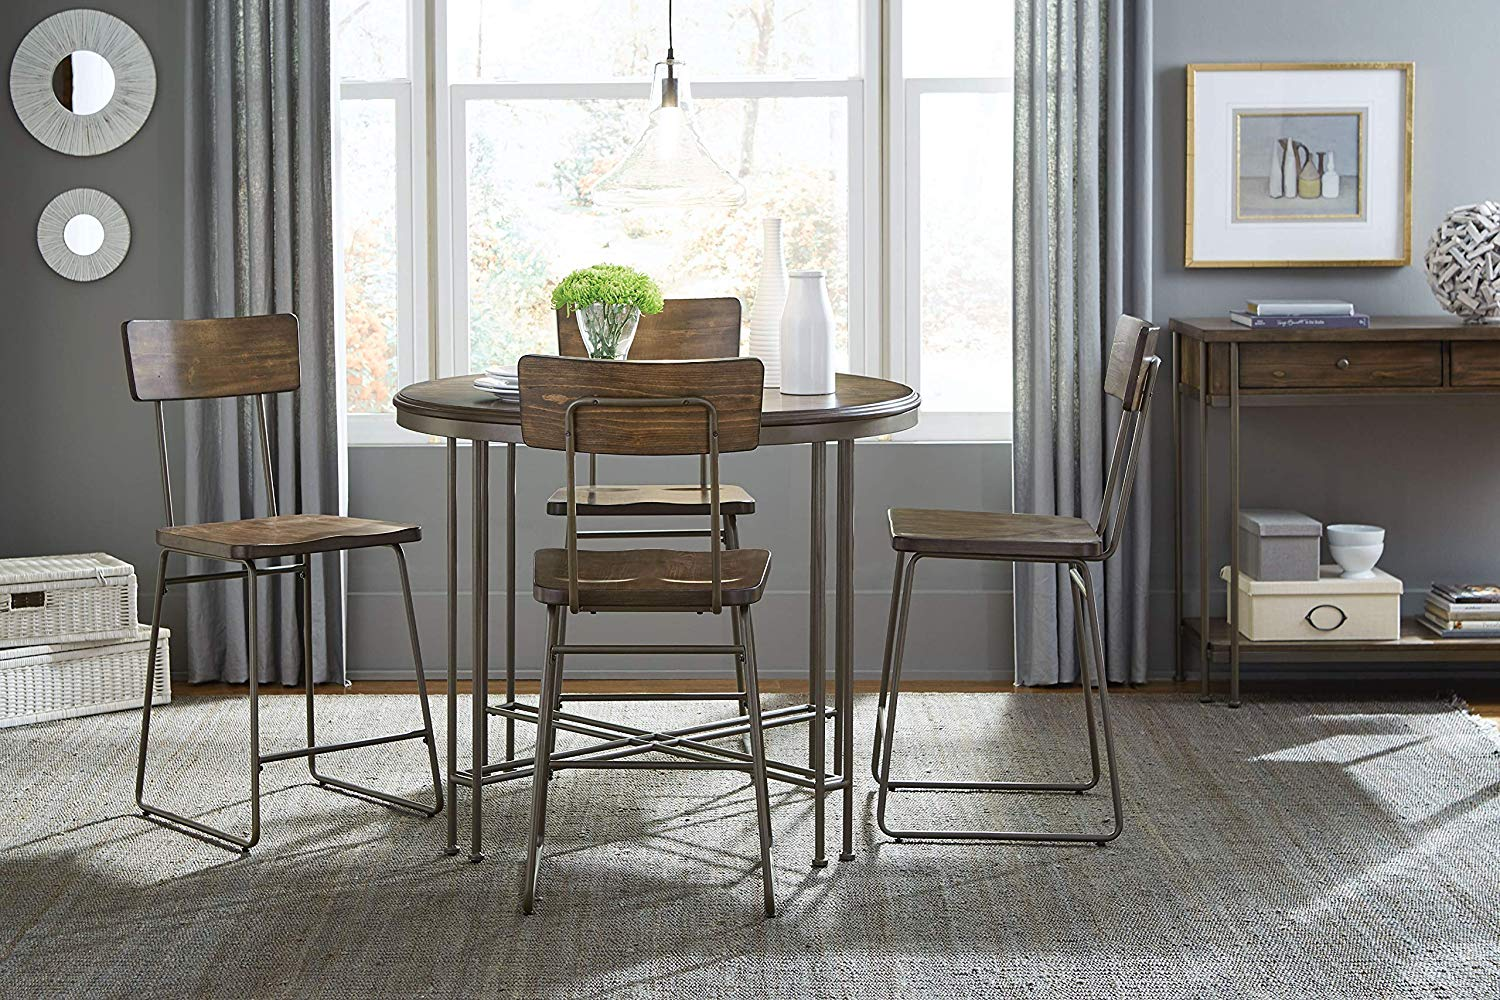 Eslo Bronze Metal Legs Counter Height Dining Set with Table, Four Dining Chairs, and Sideboard